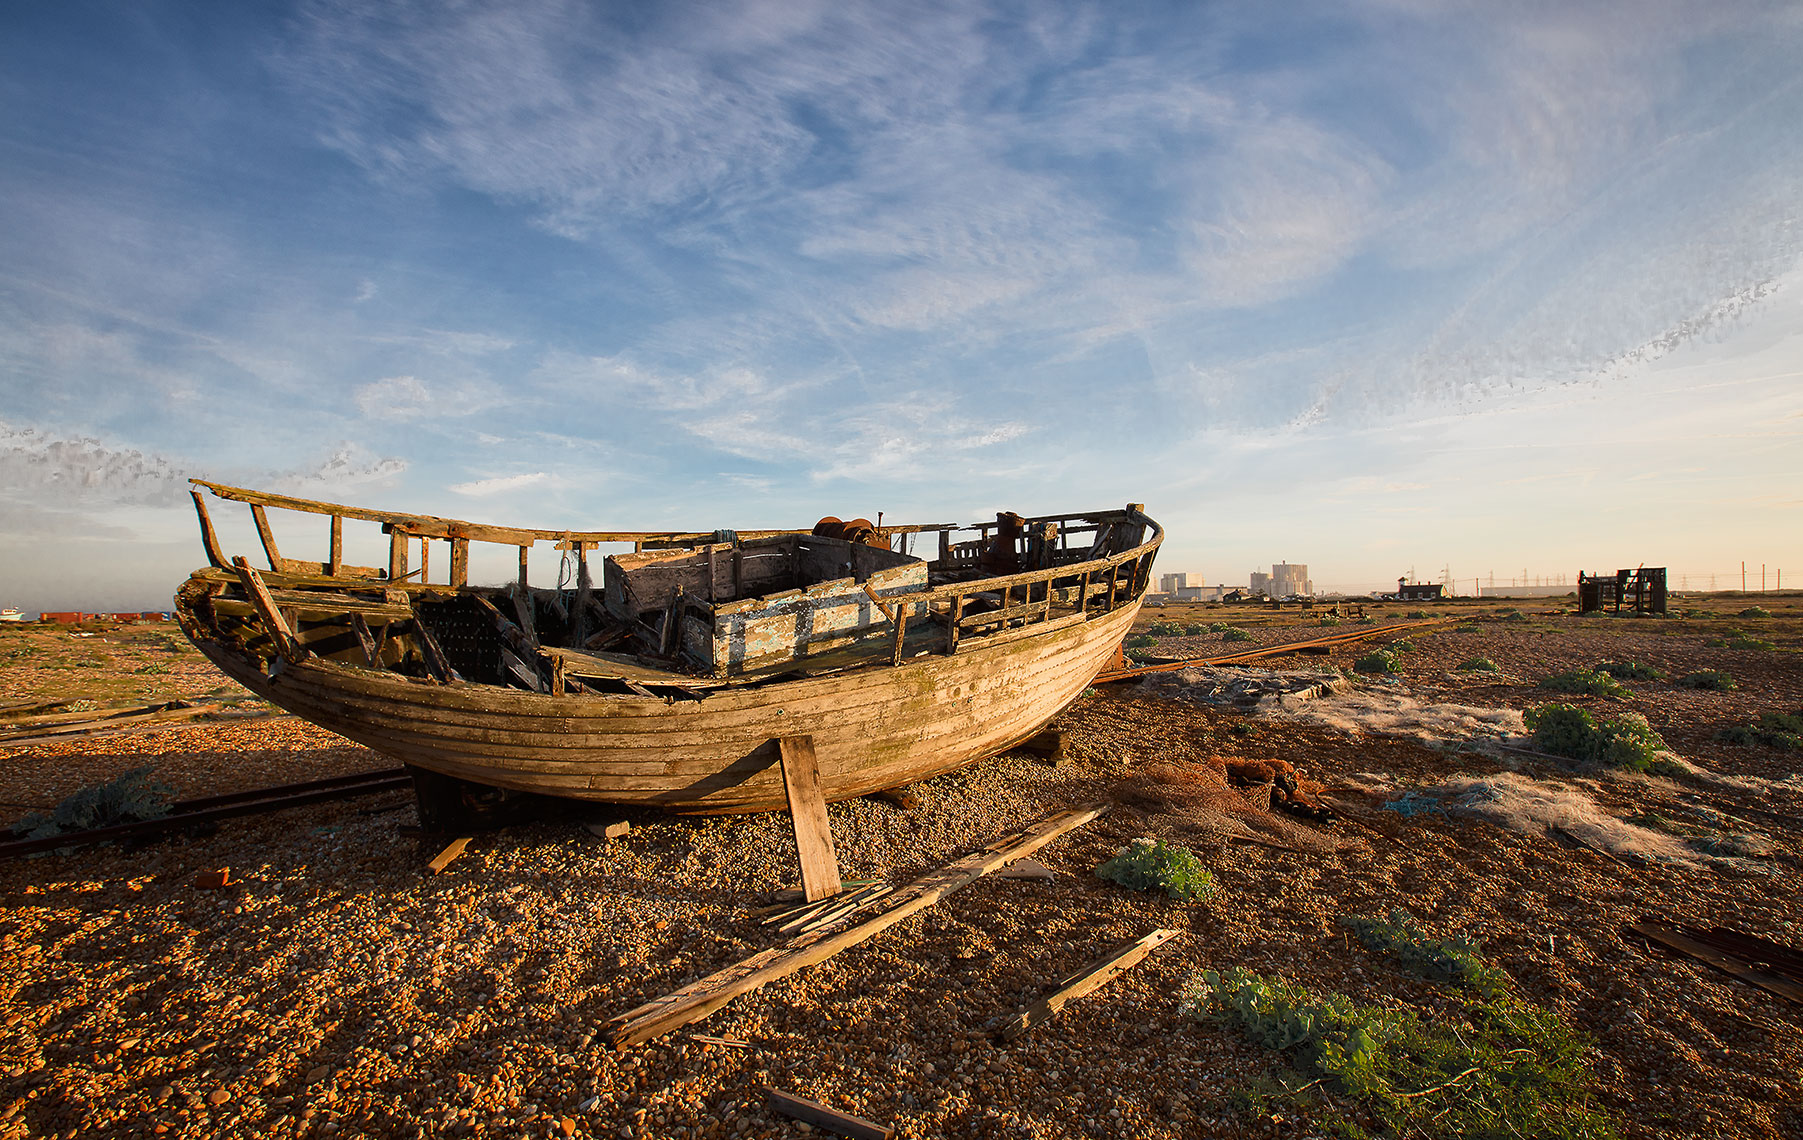 Old weathered ship with ageing wooden structure in desert environment